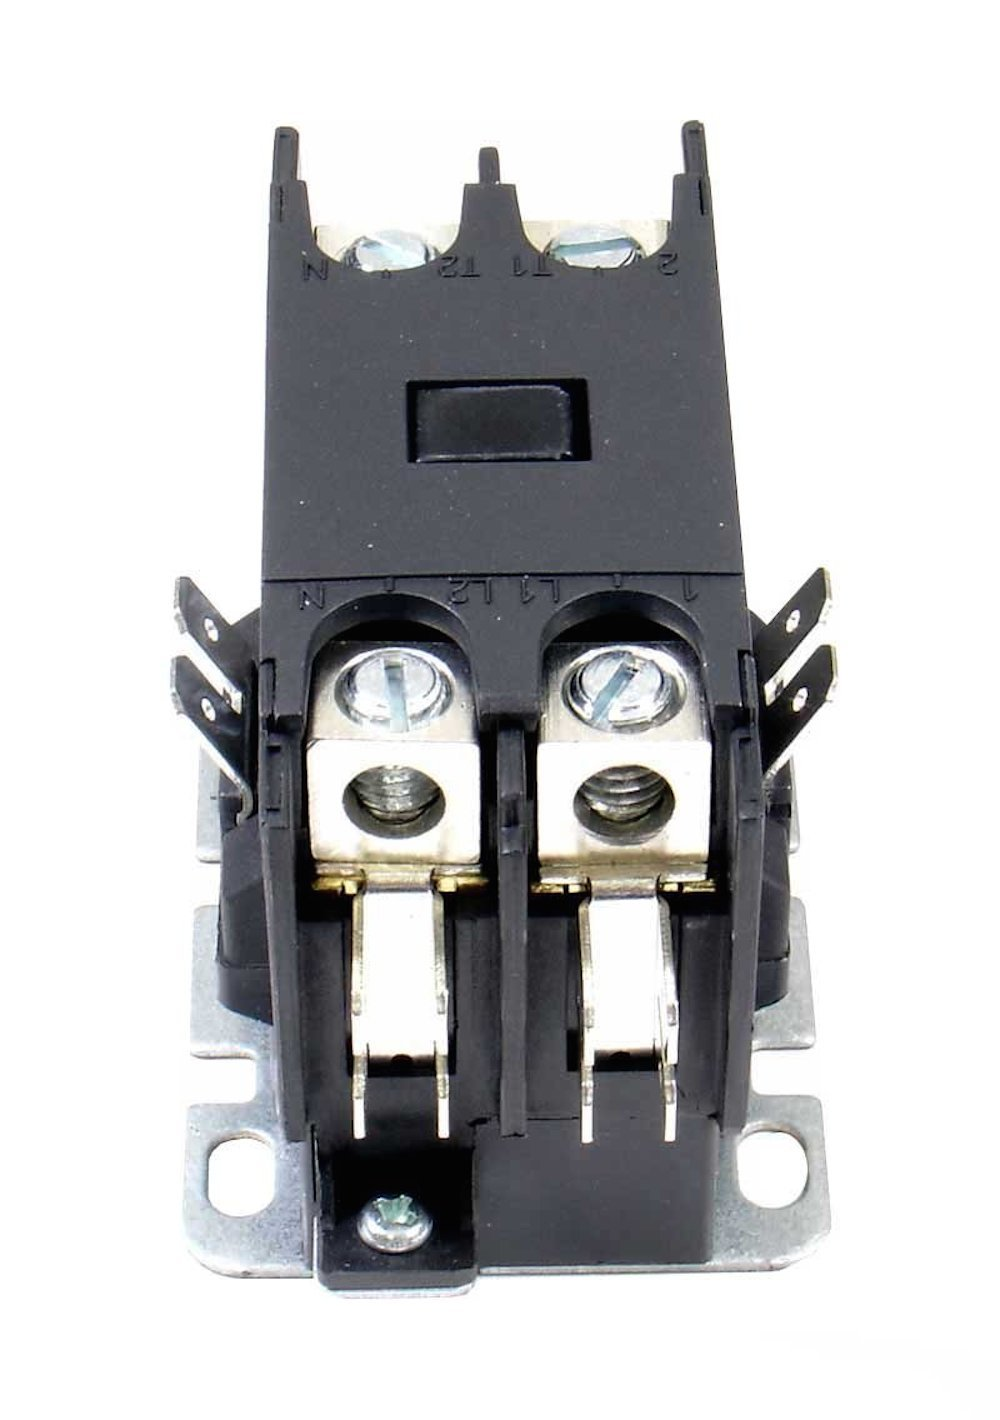 Rheem Ruud 30a 1 Pole Contactor With 24v Coil 42 25101 01 Amazon Wiring Diagram 024jaz Upmc Home Improvement